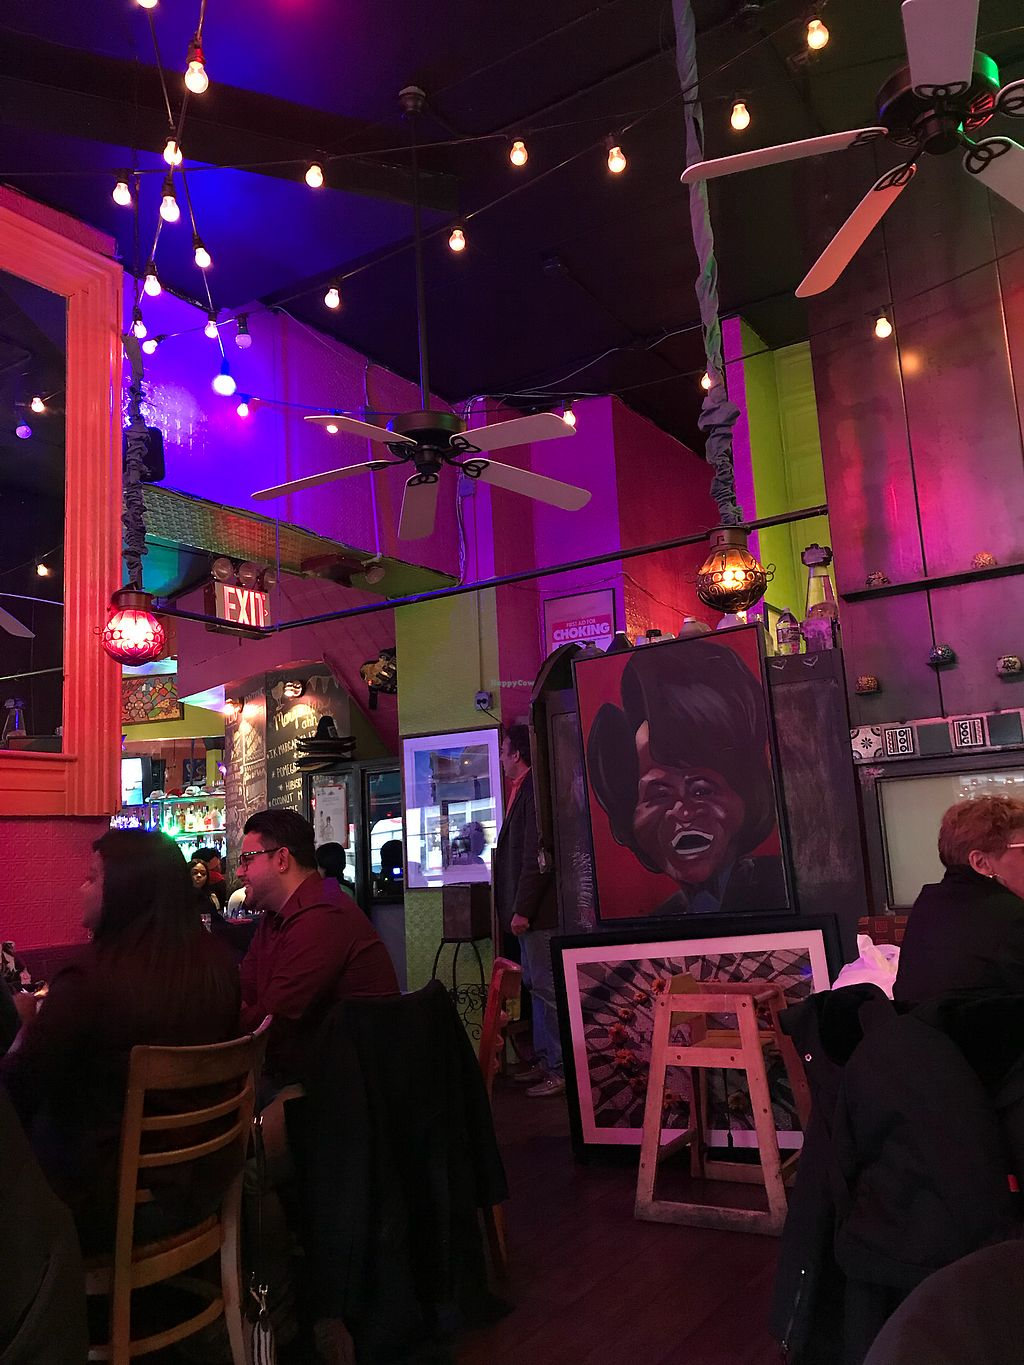 """Photo of Burrito Bar and Kitchen  by <a href=""""/members/profile/this.is.kara"""">this.is.kara</a> <br/>Very colorful! <br/> March 16, 2018  - <a href='/contact/abuse/image/28933/371530'>Report</a>"""